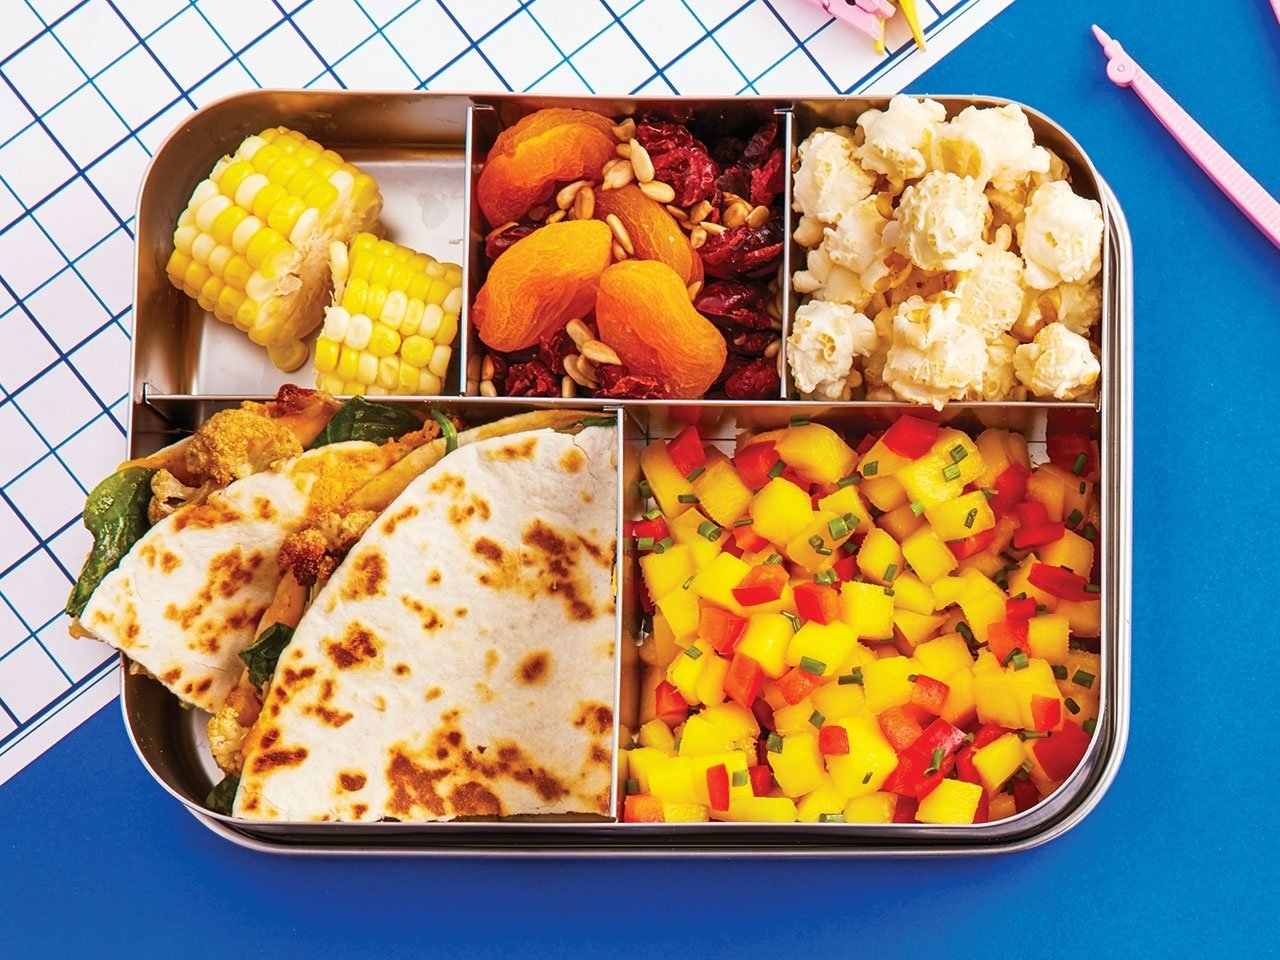 10 Amazing Healthy Lunch Ideas For Kids 10 bento box lunch ideas your kids will love todays parent 2020